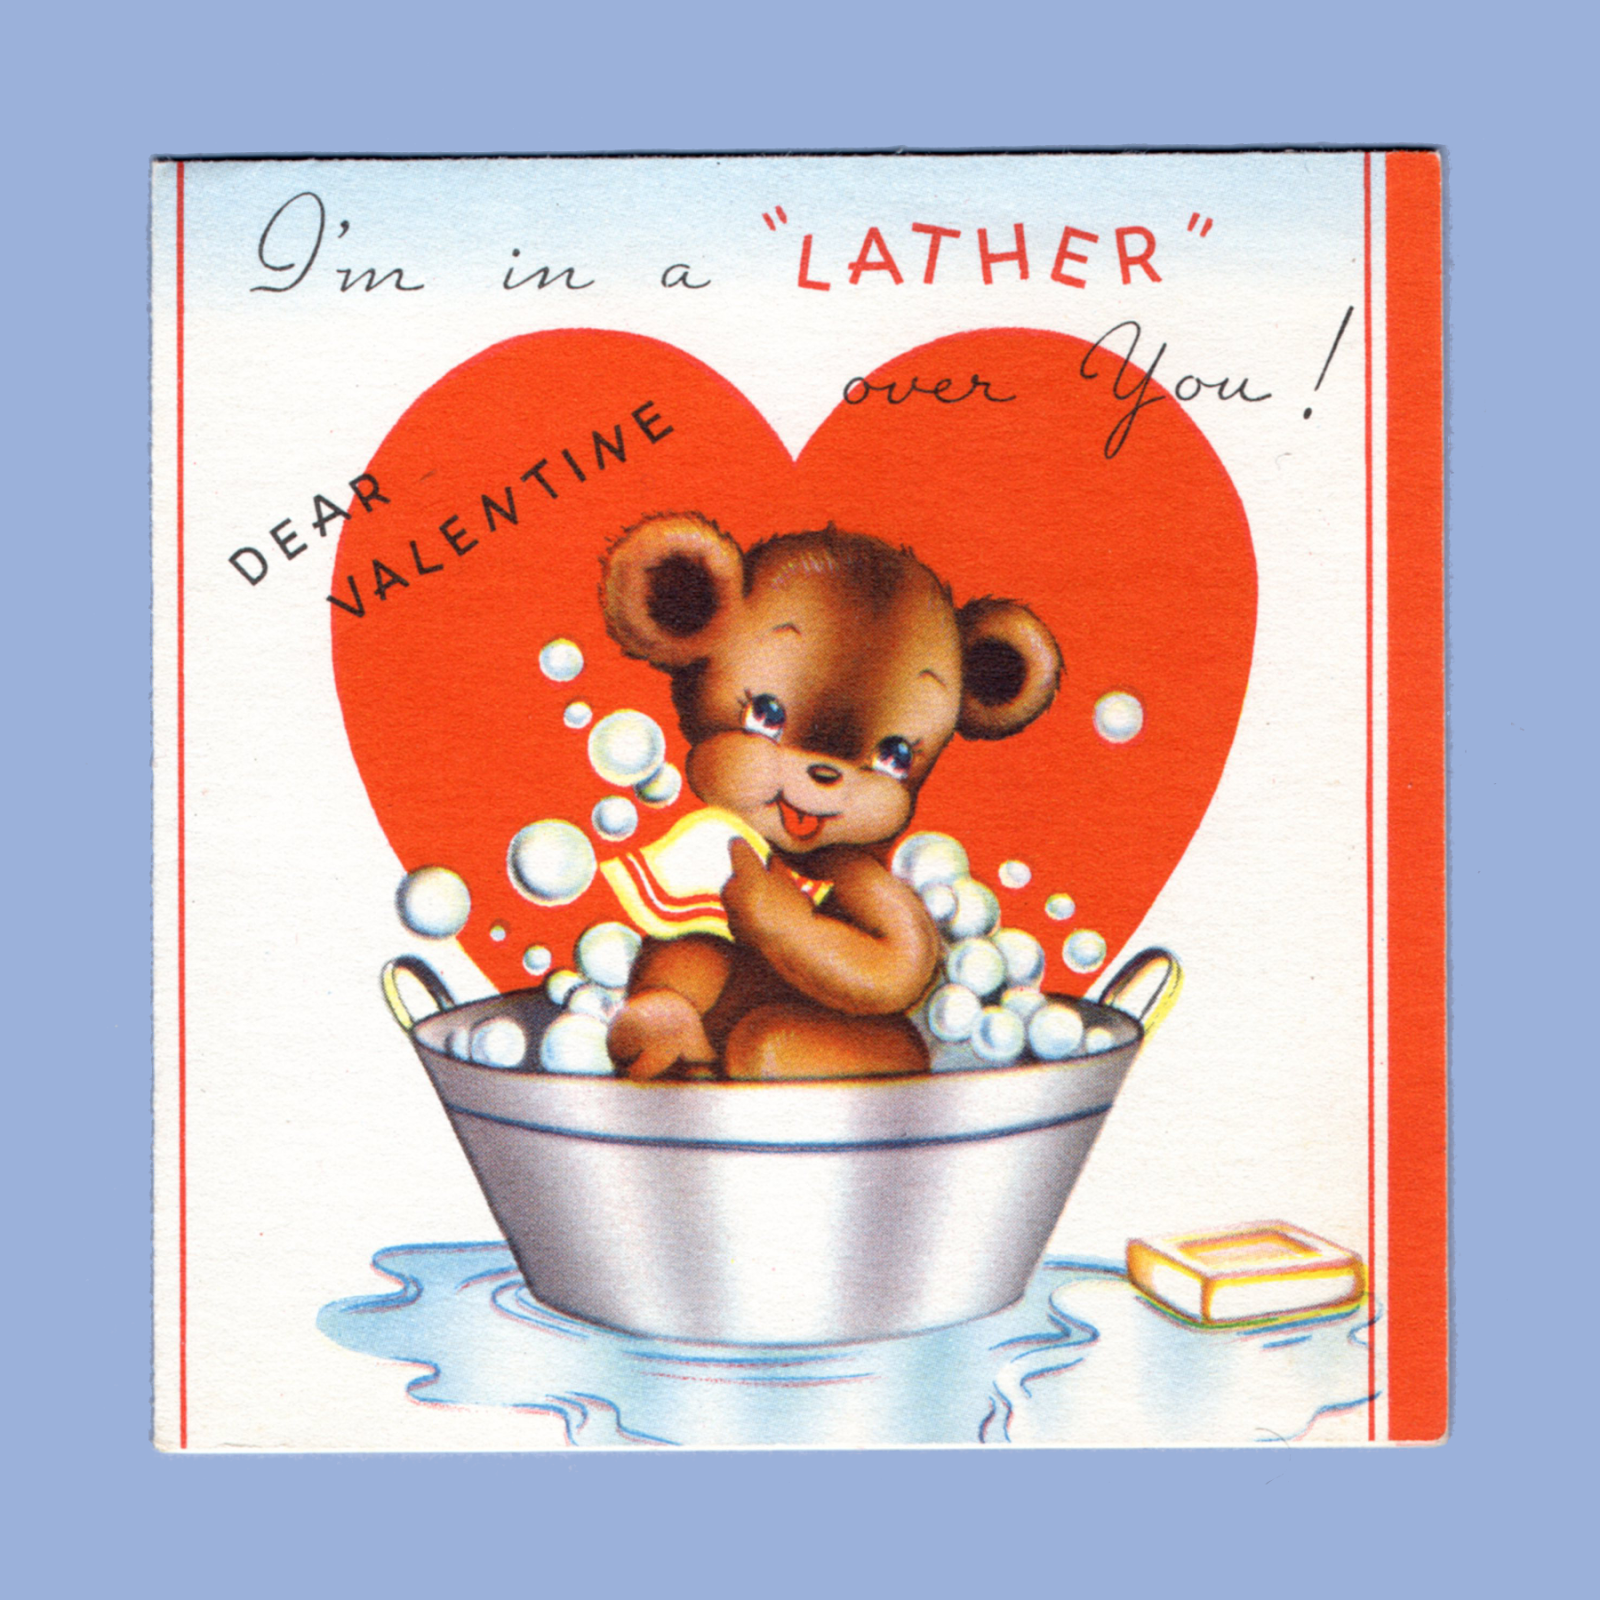 Iu0027m in a LATHER over you! Dear Valentine ~ And just BUBBLING OVER with Love! - Rub A Dub Dub PNG